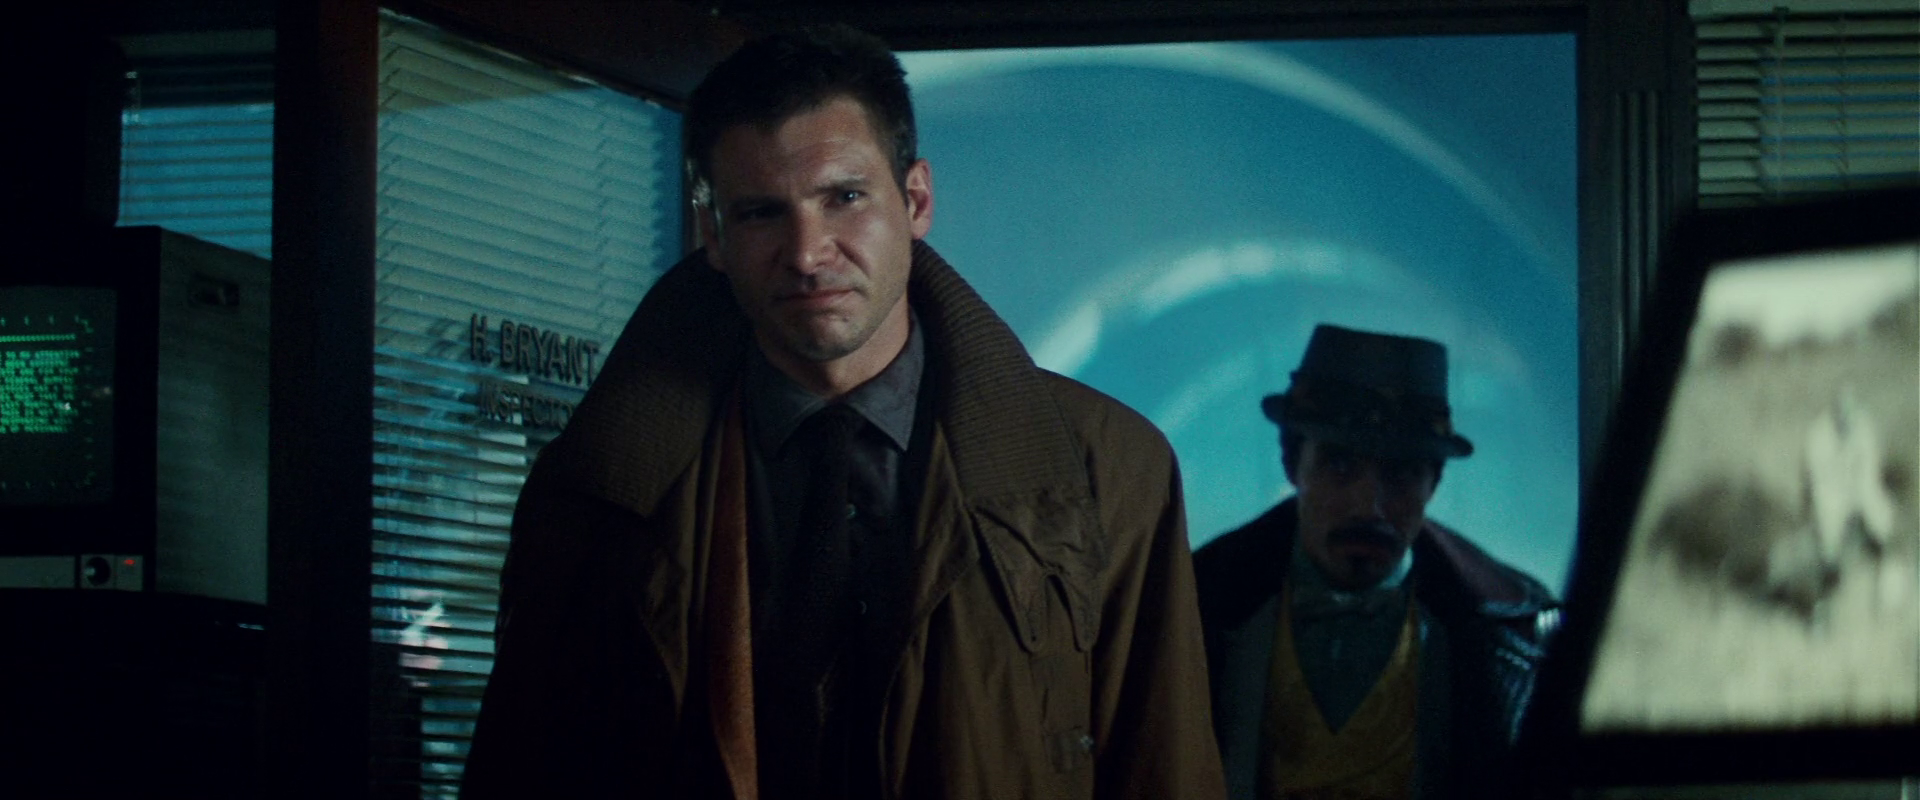 essays blade runner analysis